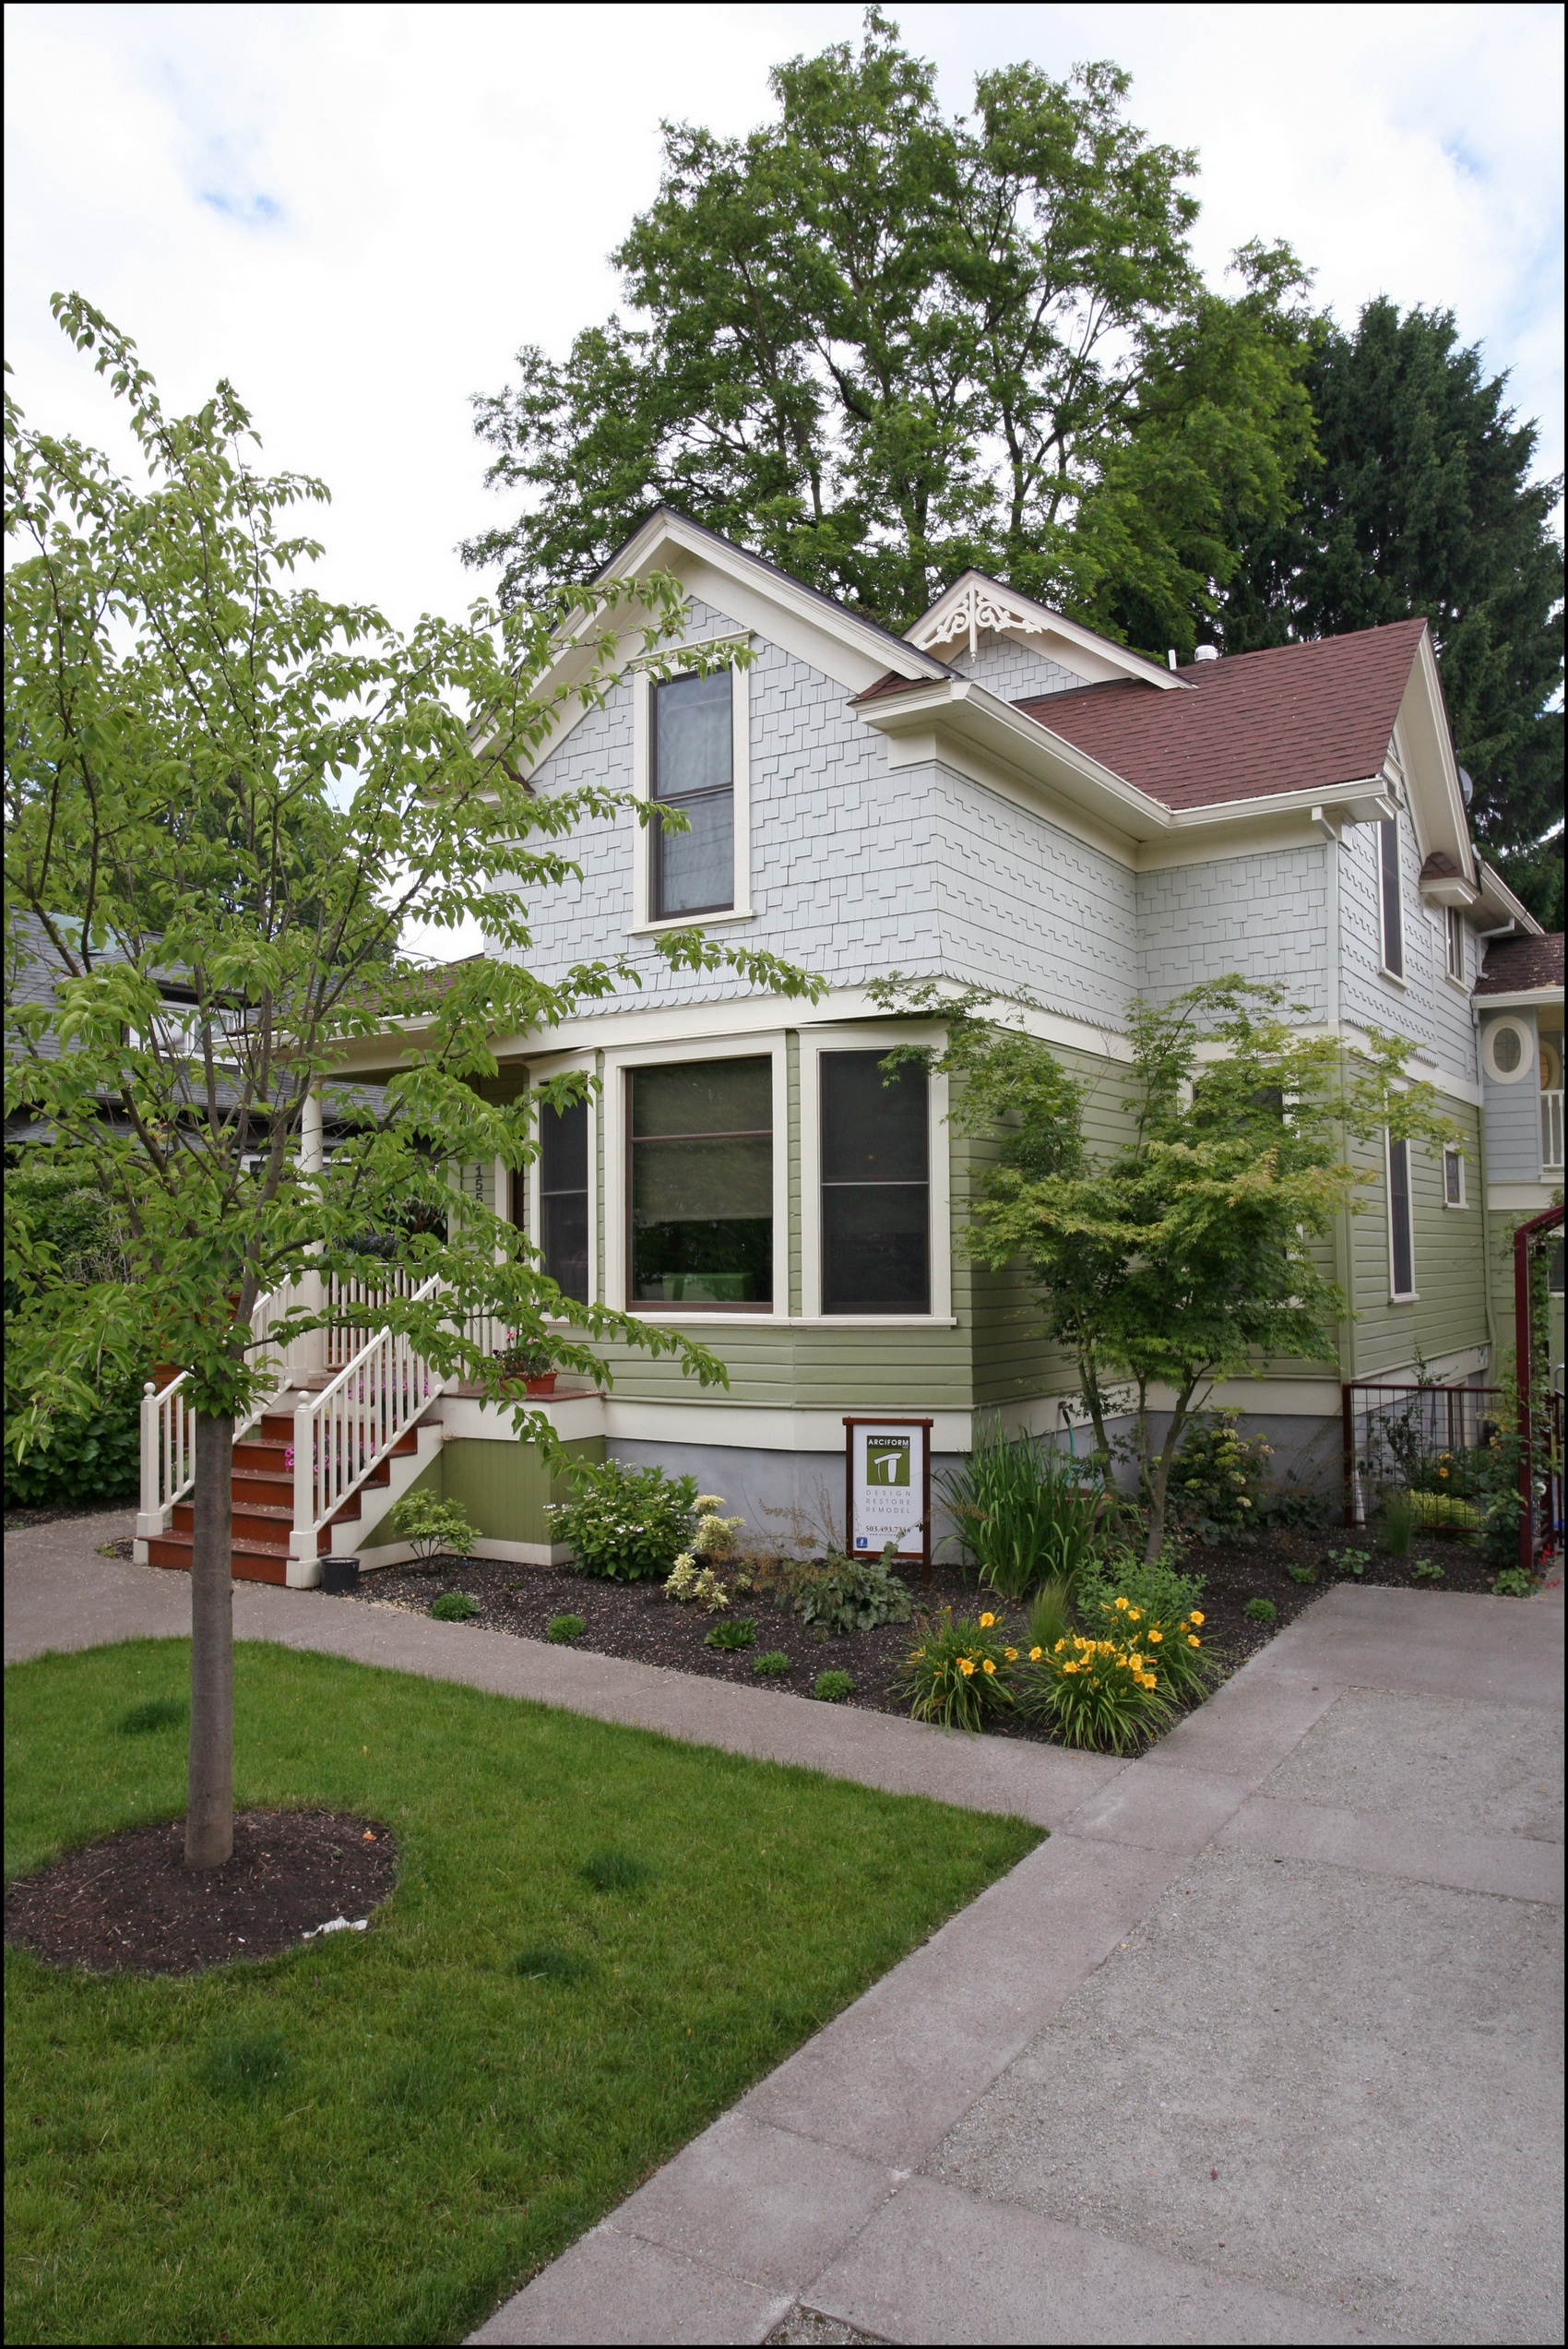 Exterior Paint Colors Rustic Homes A Breath Of Fresh Air From The Contemporary Exterior Home